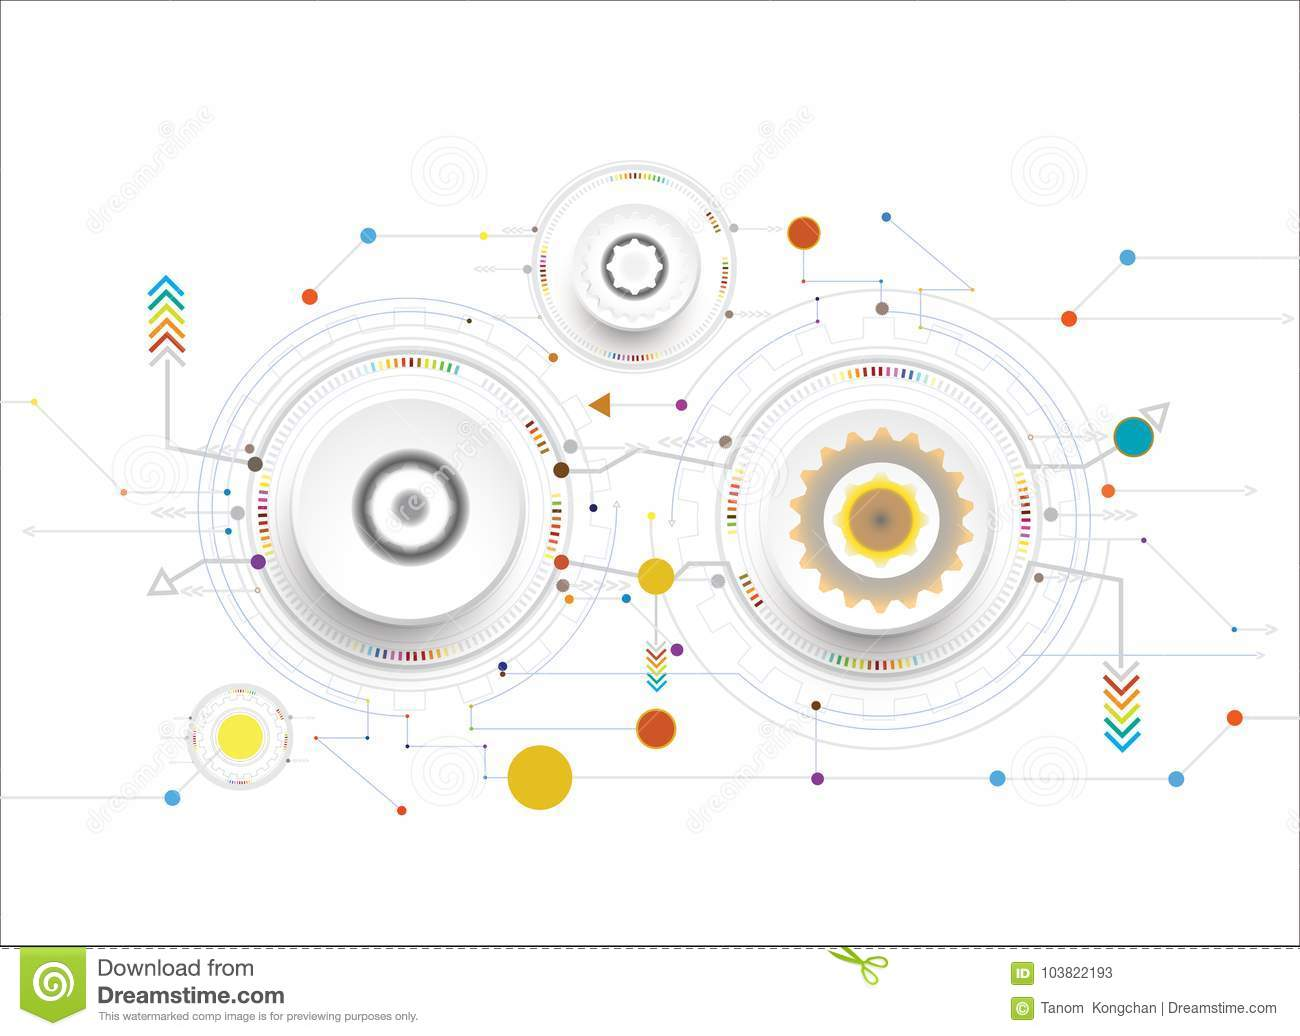 Vector Illustration White Color And Gear Wheel On Circuit Board Diagram